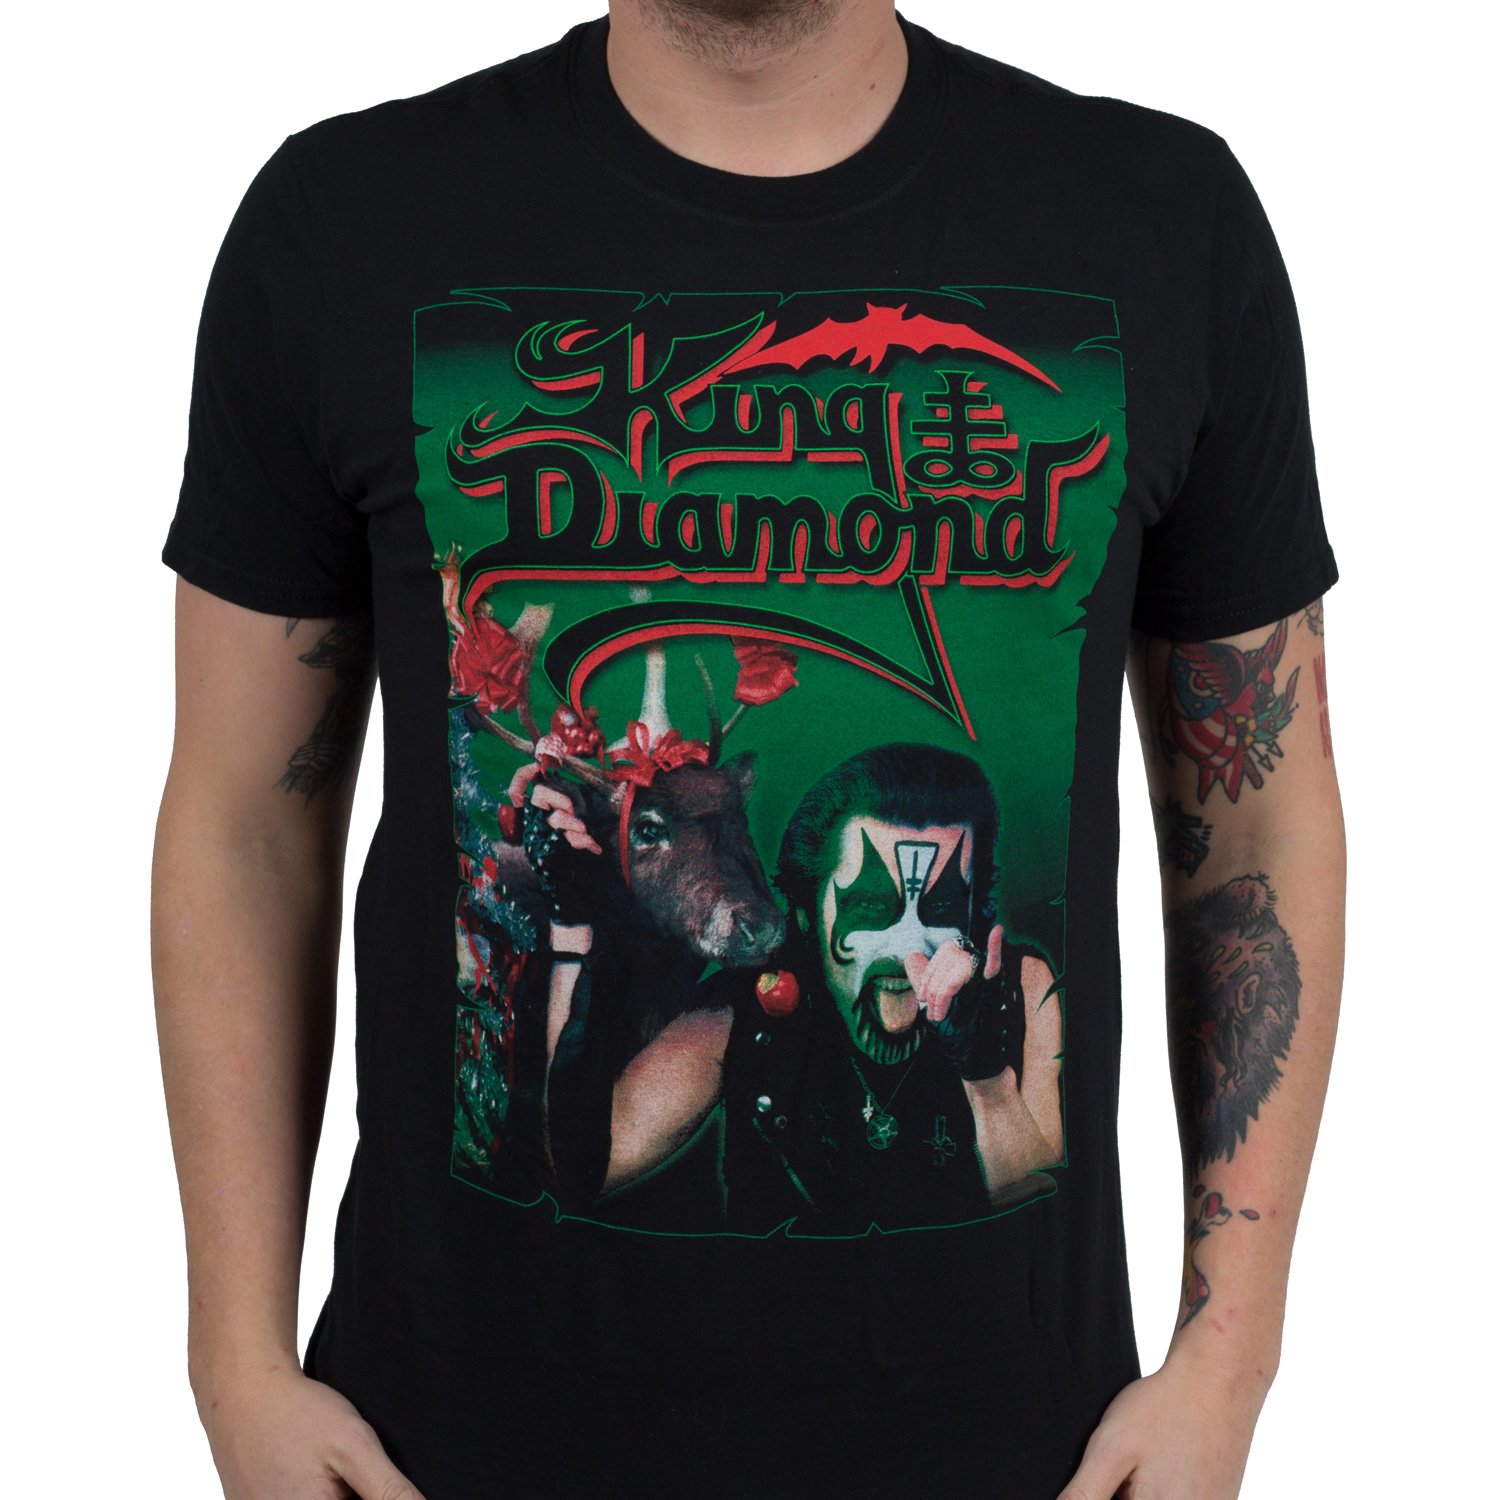 King Diamond No Presents For Christmas T Shirt ✓ Diamond Paradise